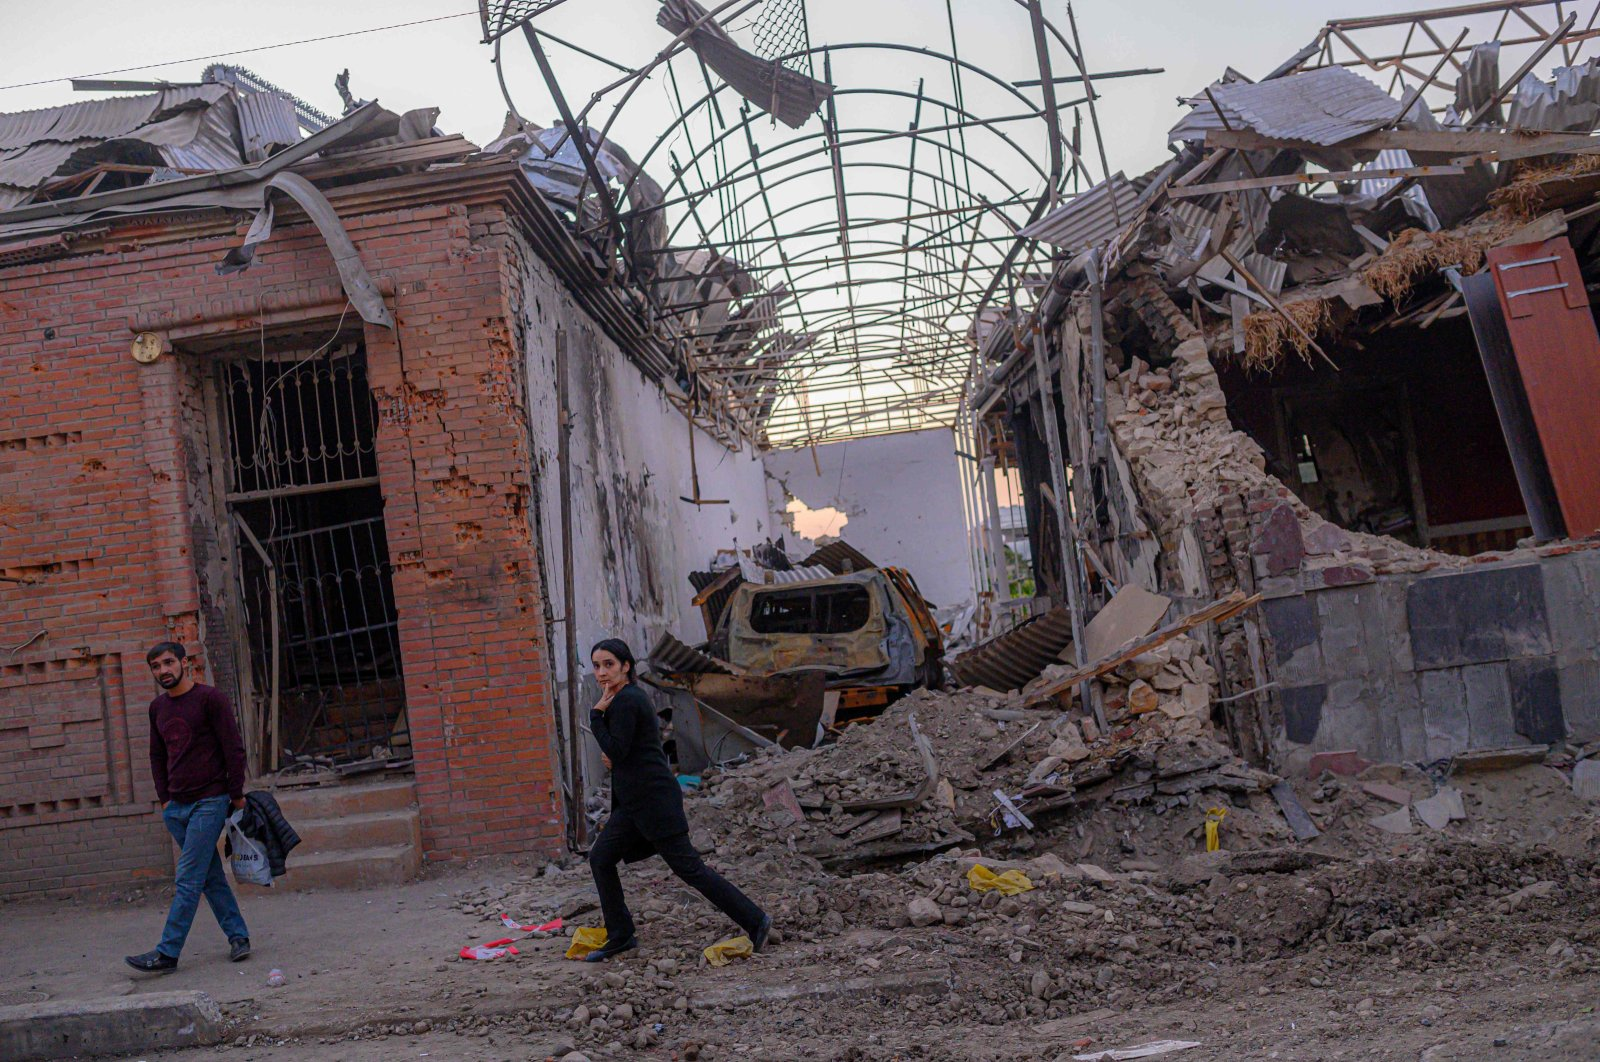 Local residents walk in a street after it was hit by an Armenian missile in Ganja, Azerbaijan, Oct. 8, 2020. (AFP Photo)